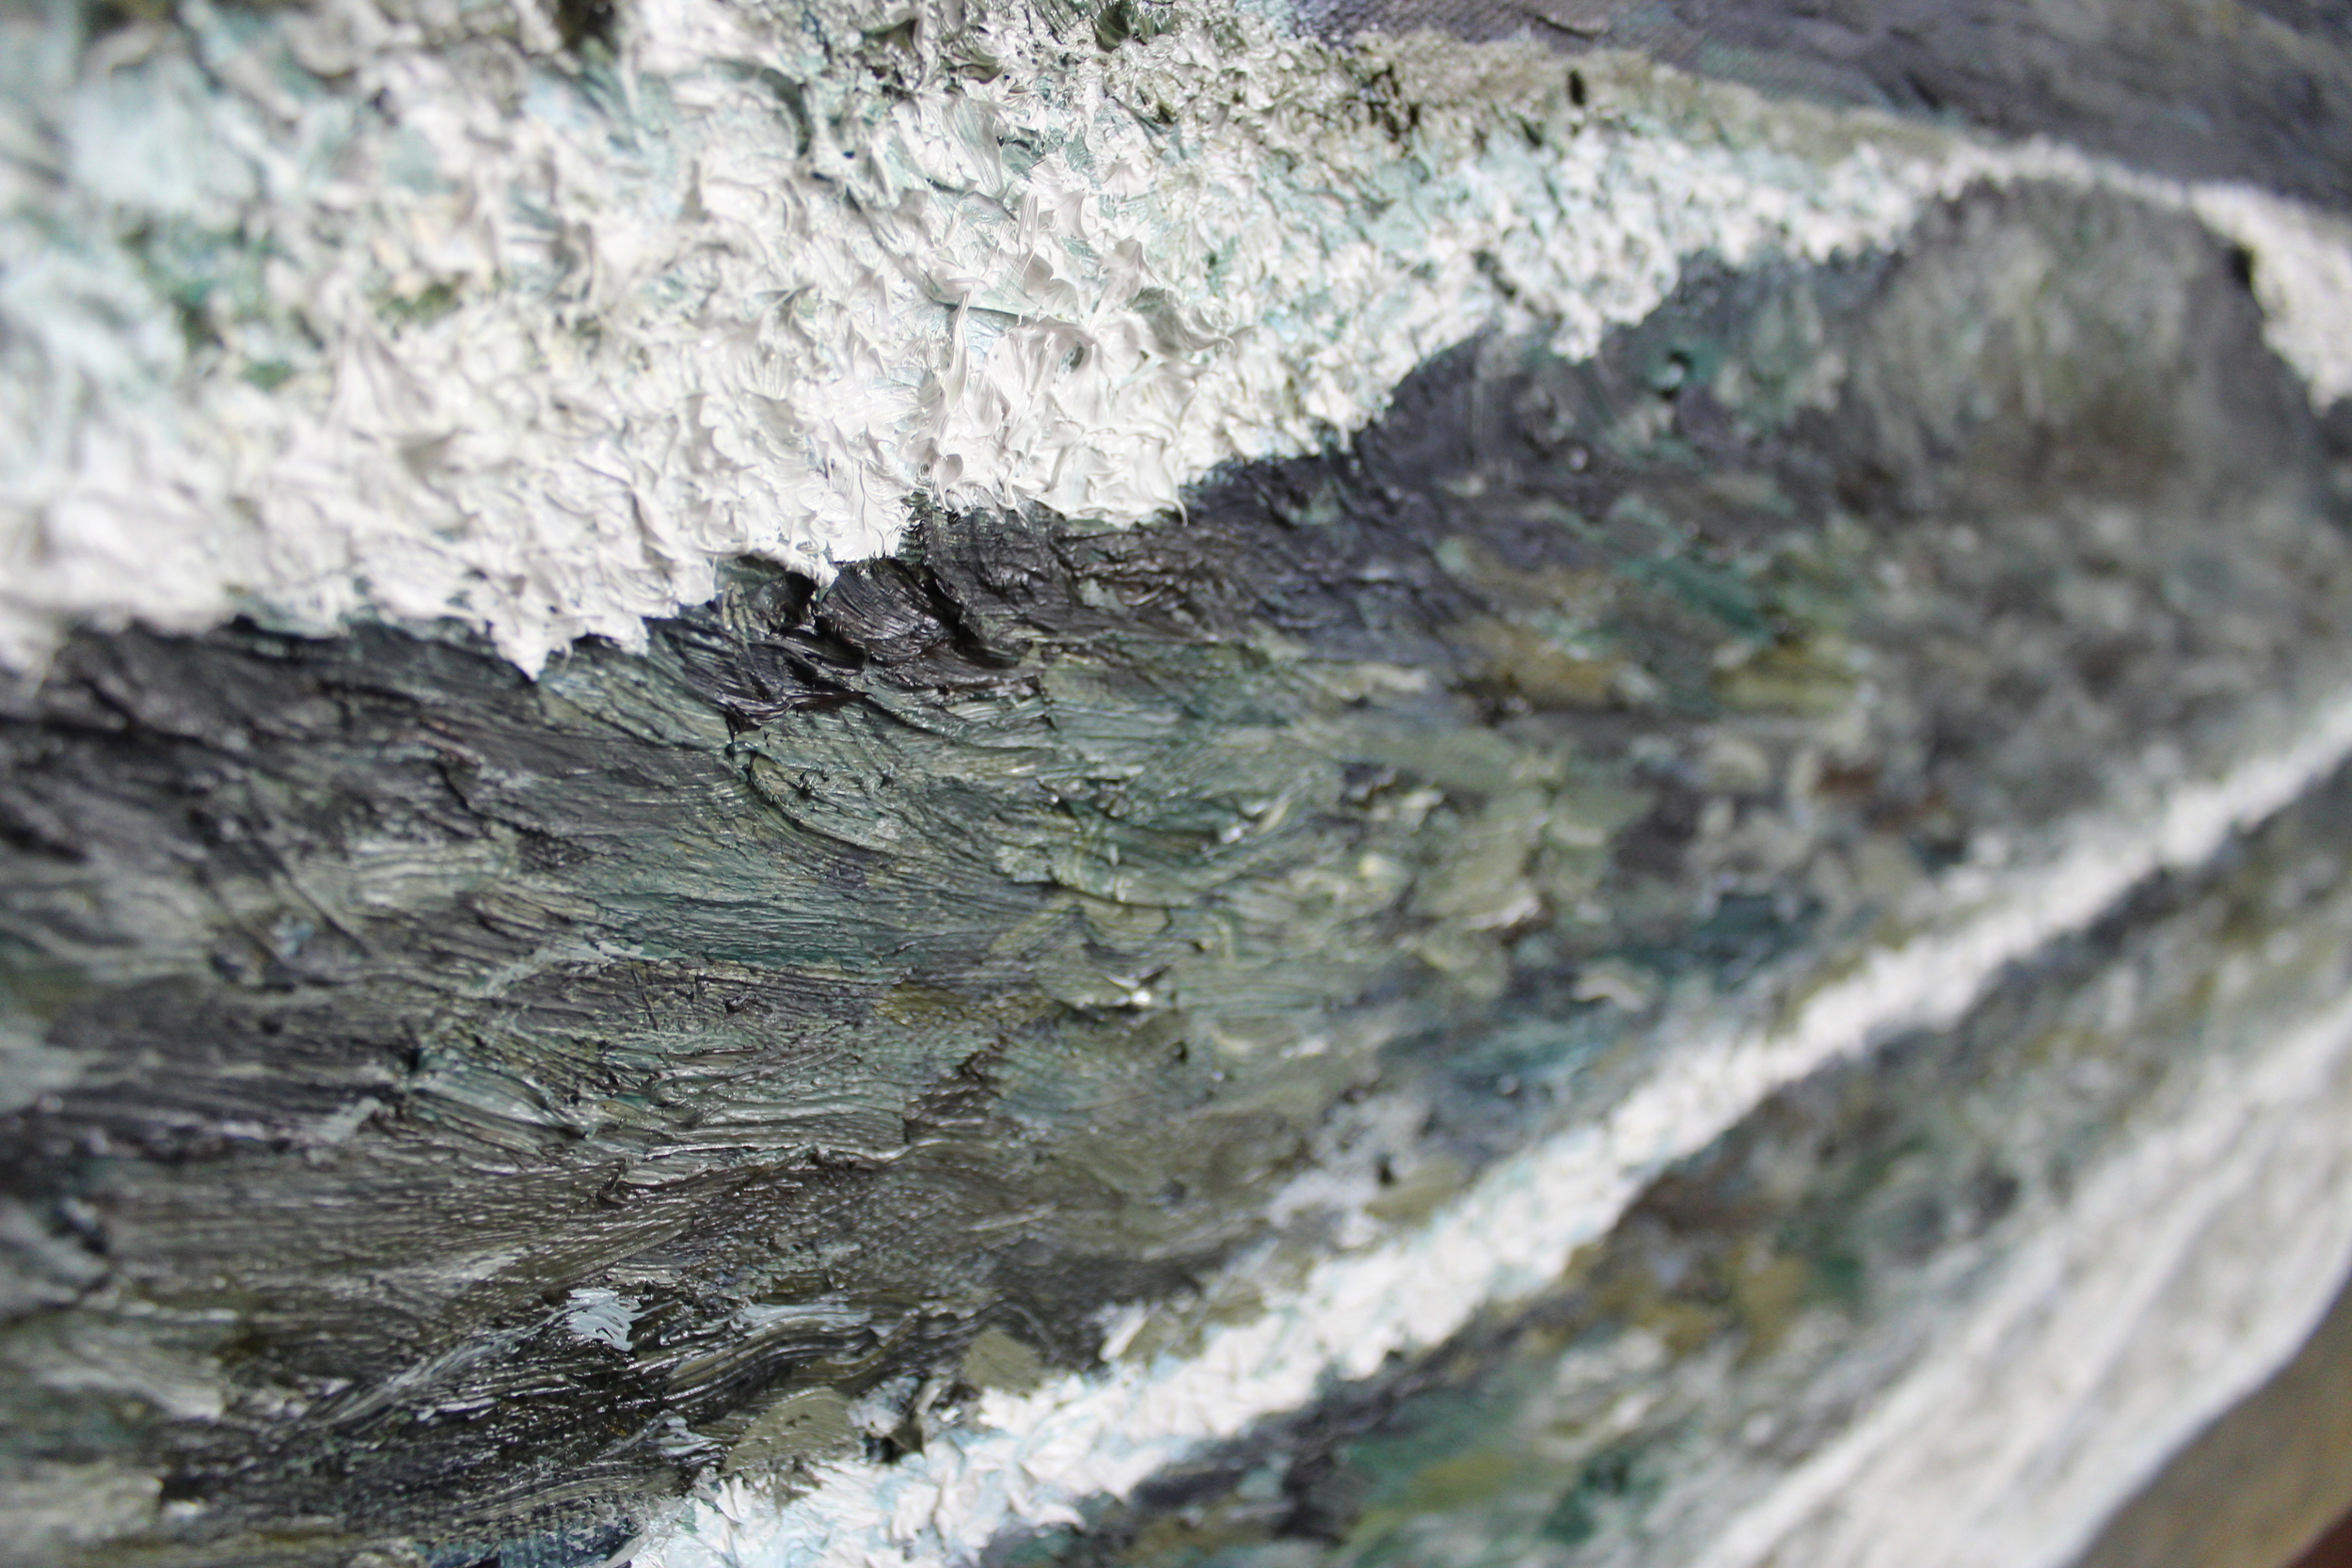 Finality without end (detail)